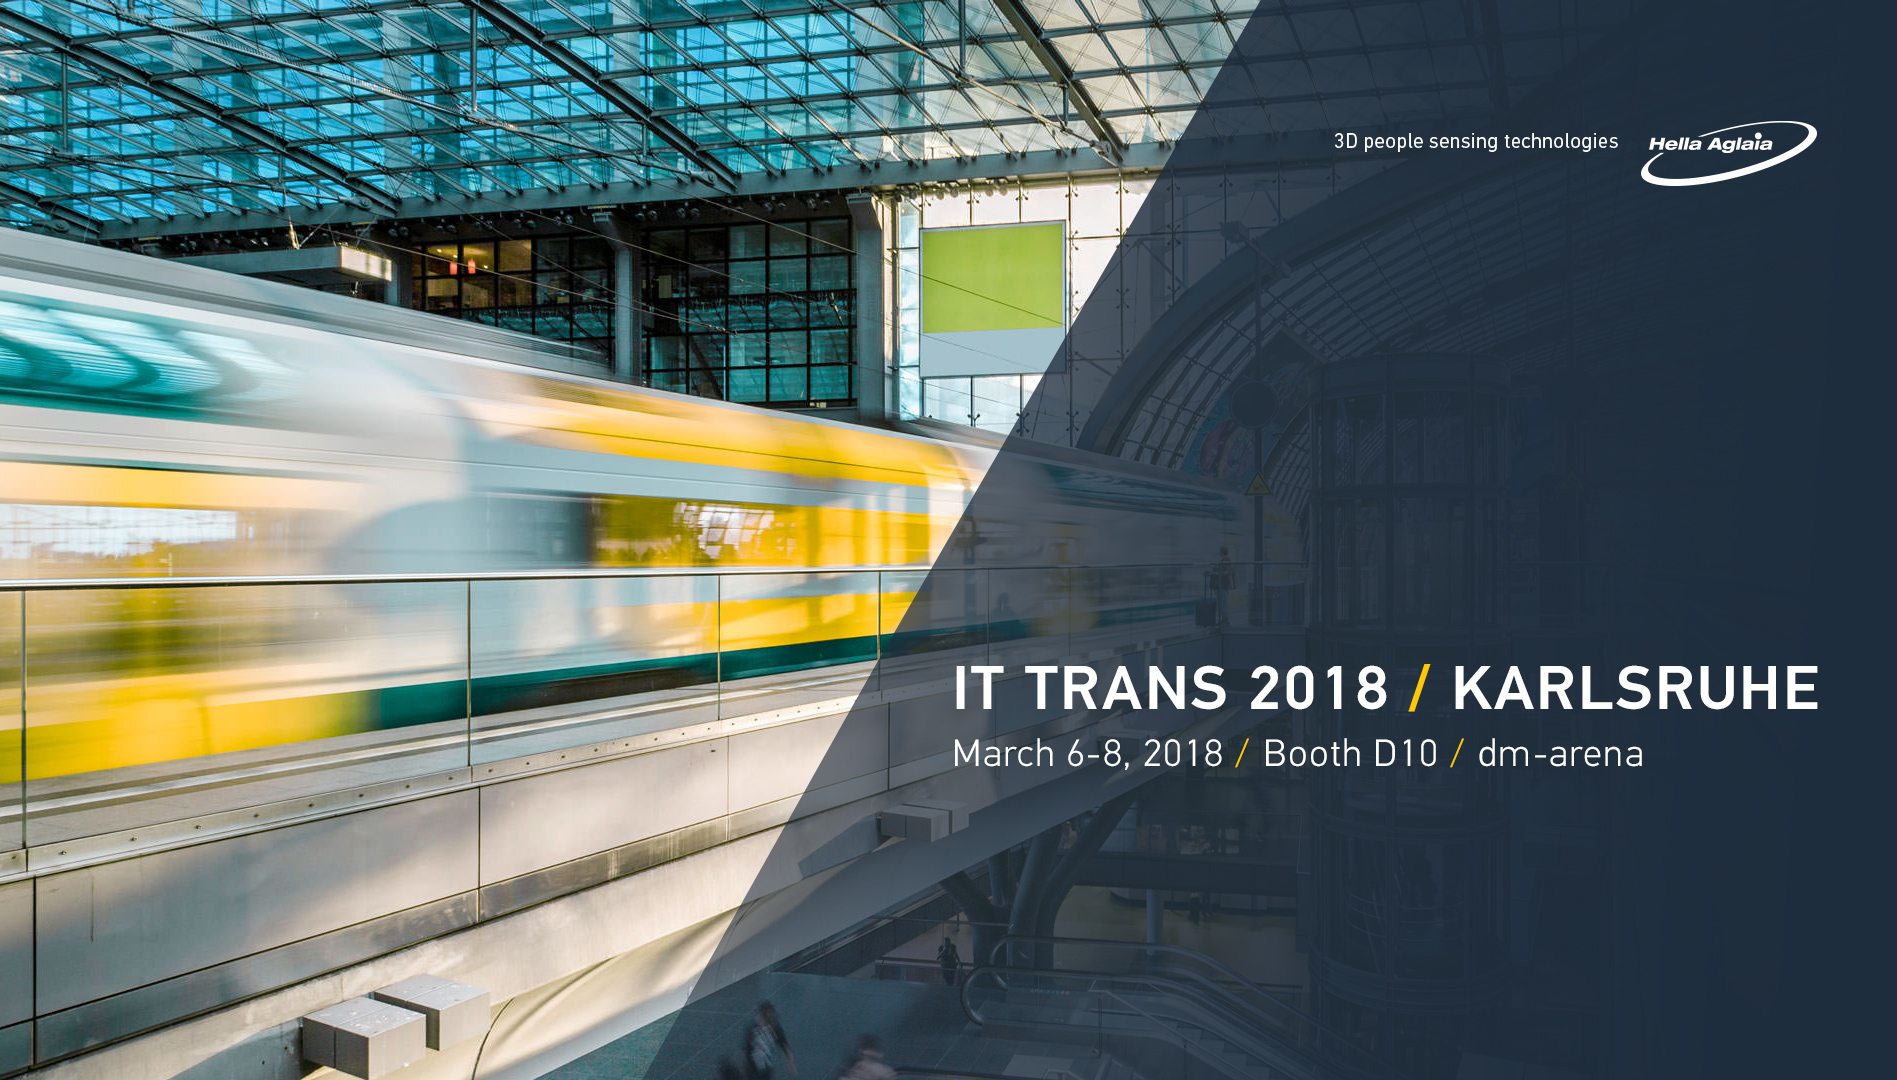 We'll showcasing our 3D passenger counting sensors at IT-Trans 2018.